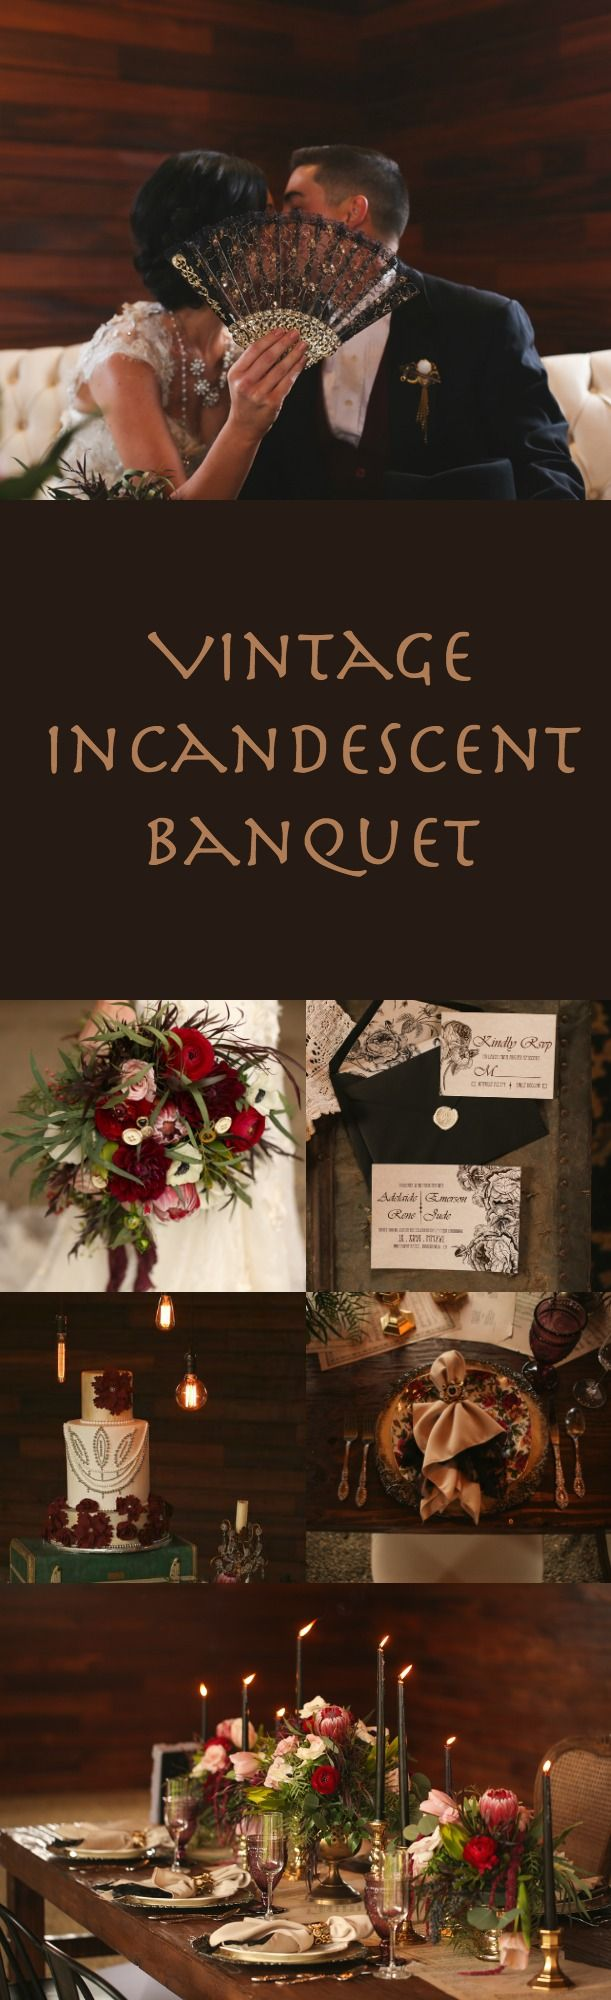 Vintage Incandescent Banquet | Beautiful and Gorgeous Wedding Theme Every Couple will Wish for!